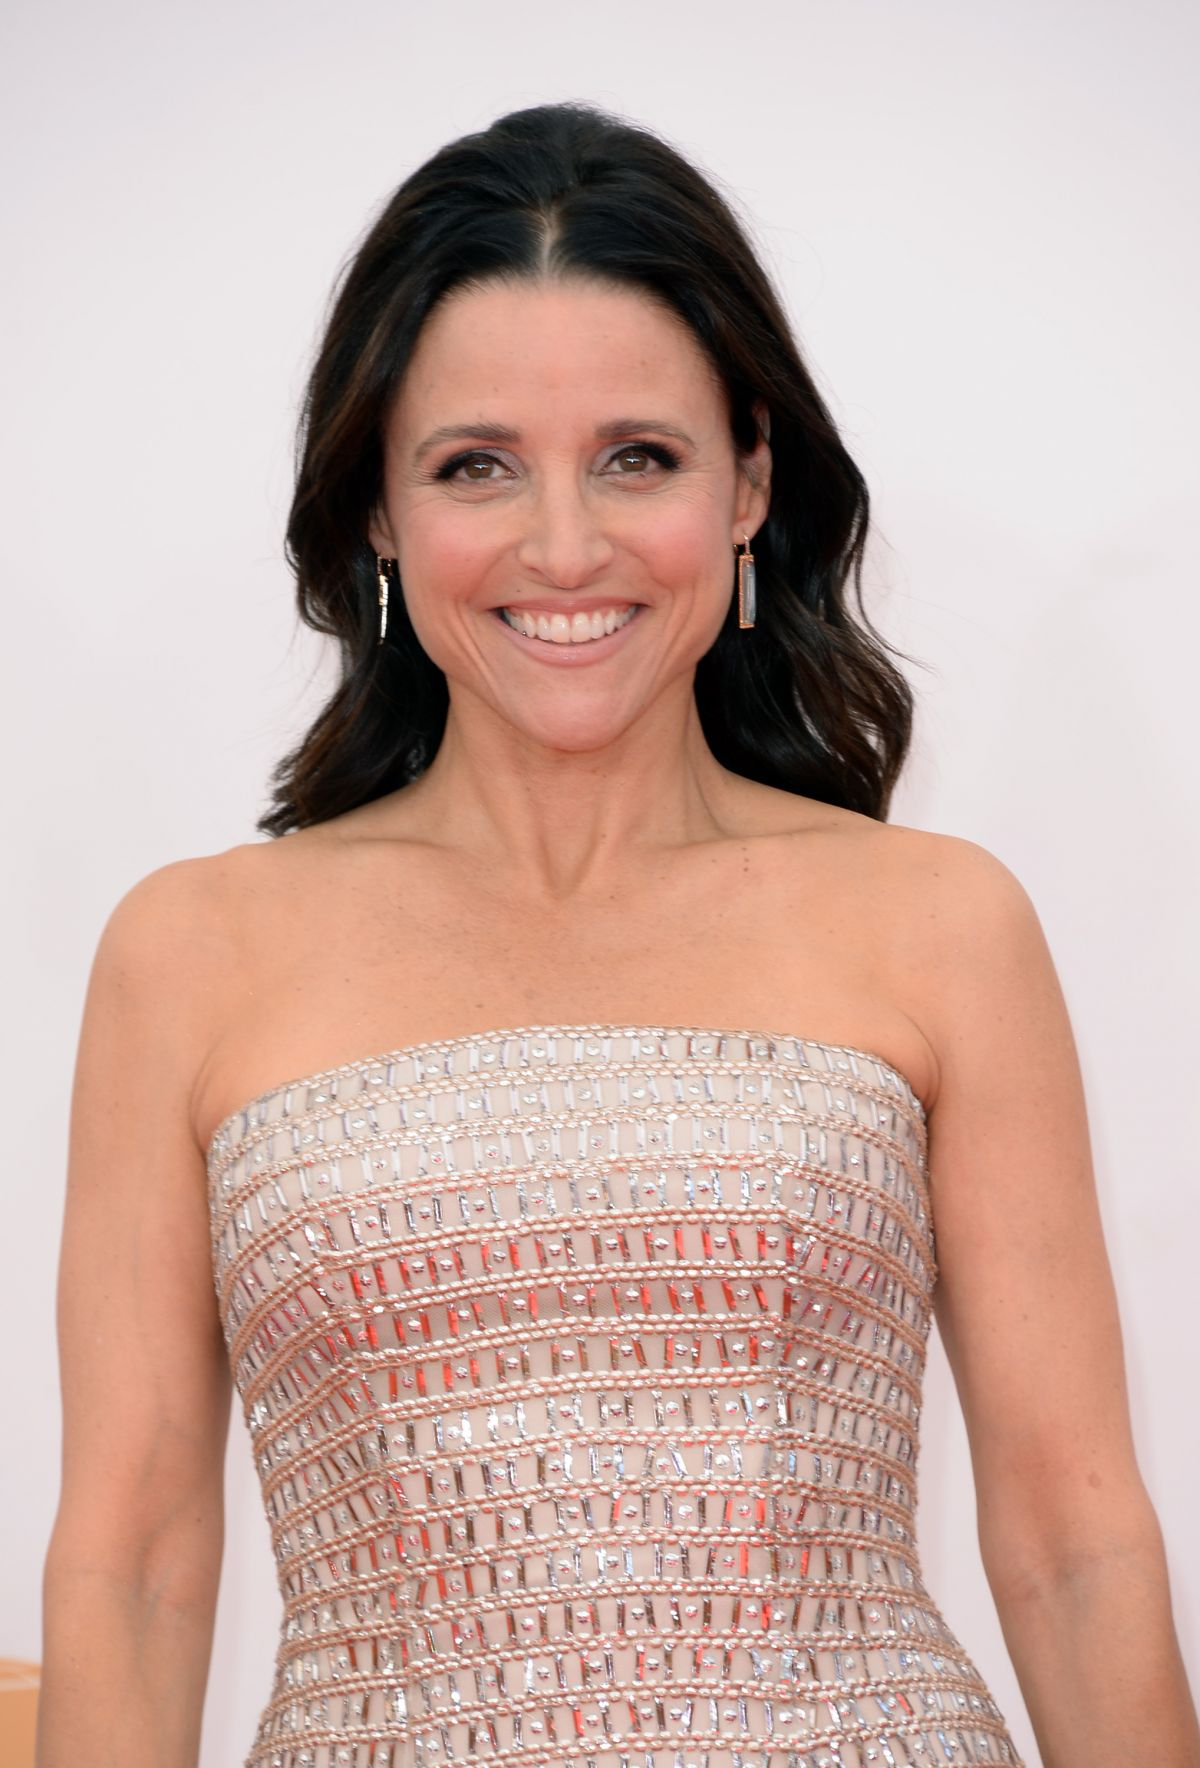 Julia Louis Dreyfus Body Weight Bra Size: Julia Louis-Dreyfus At 65th Annual Primetime Emmy Awards